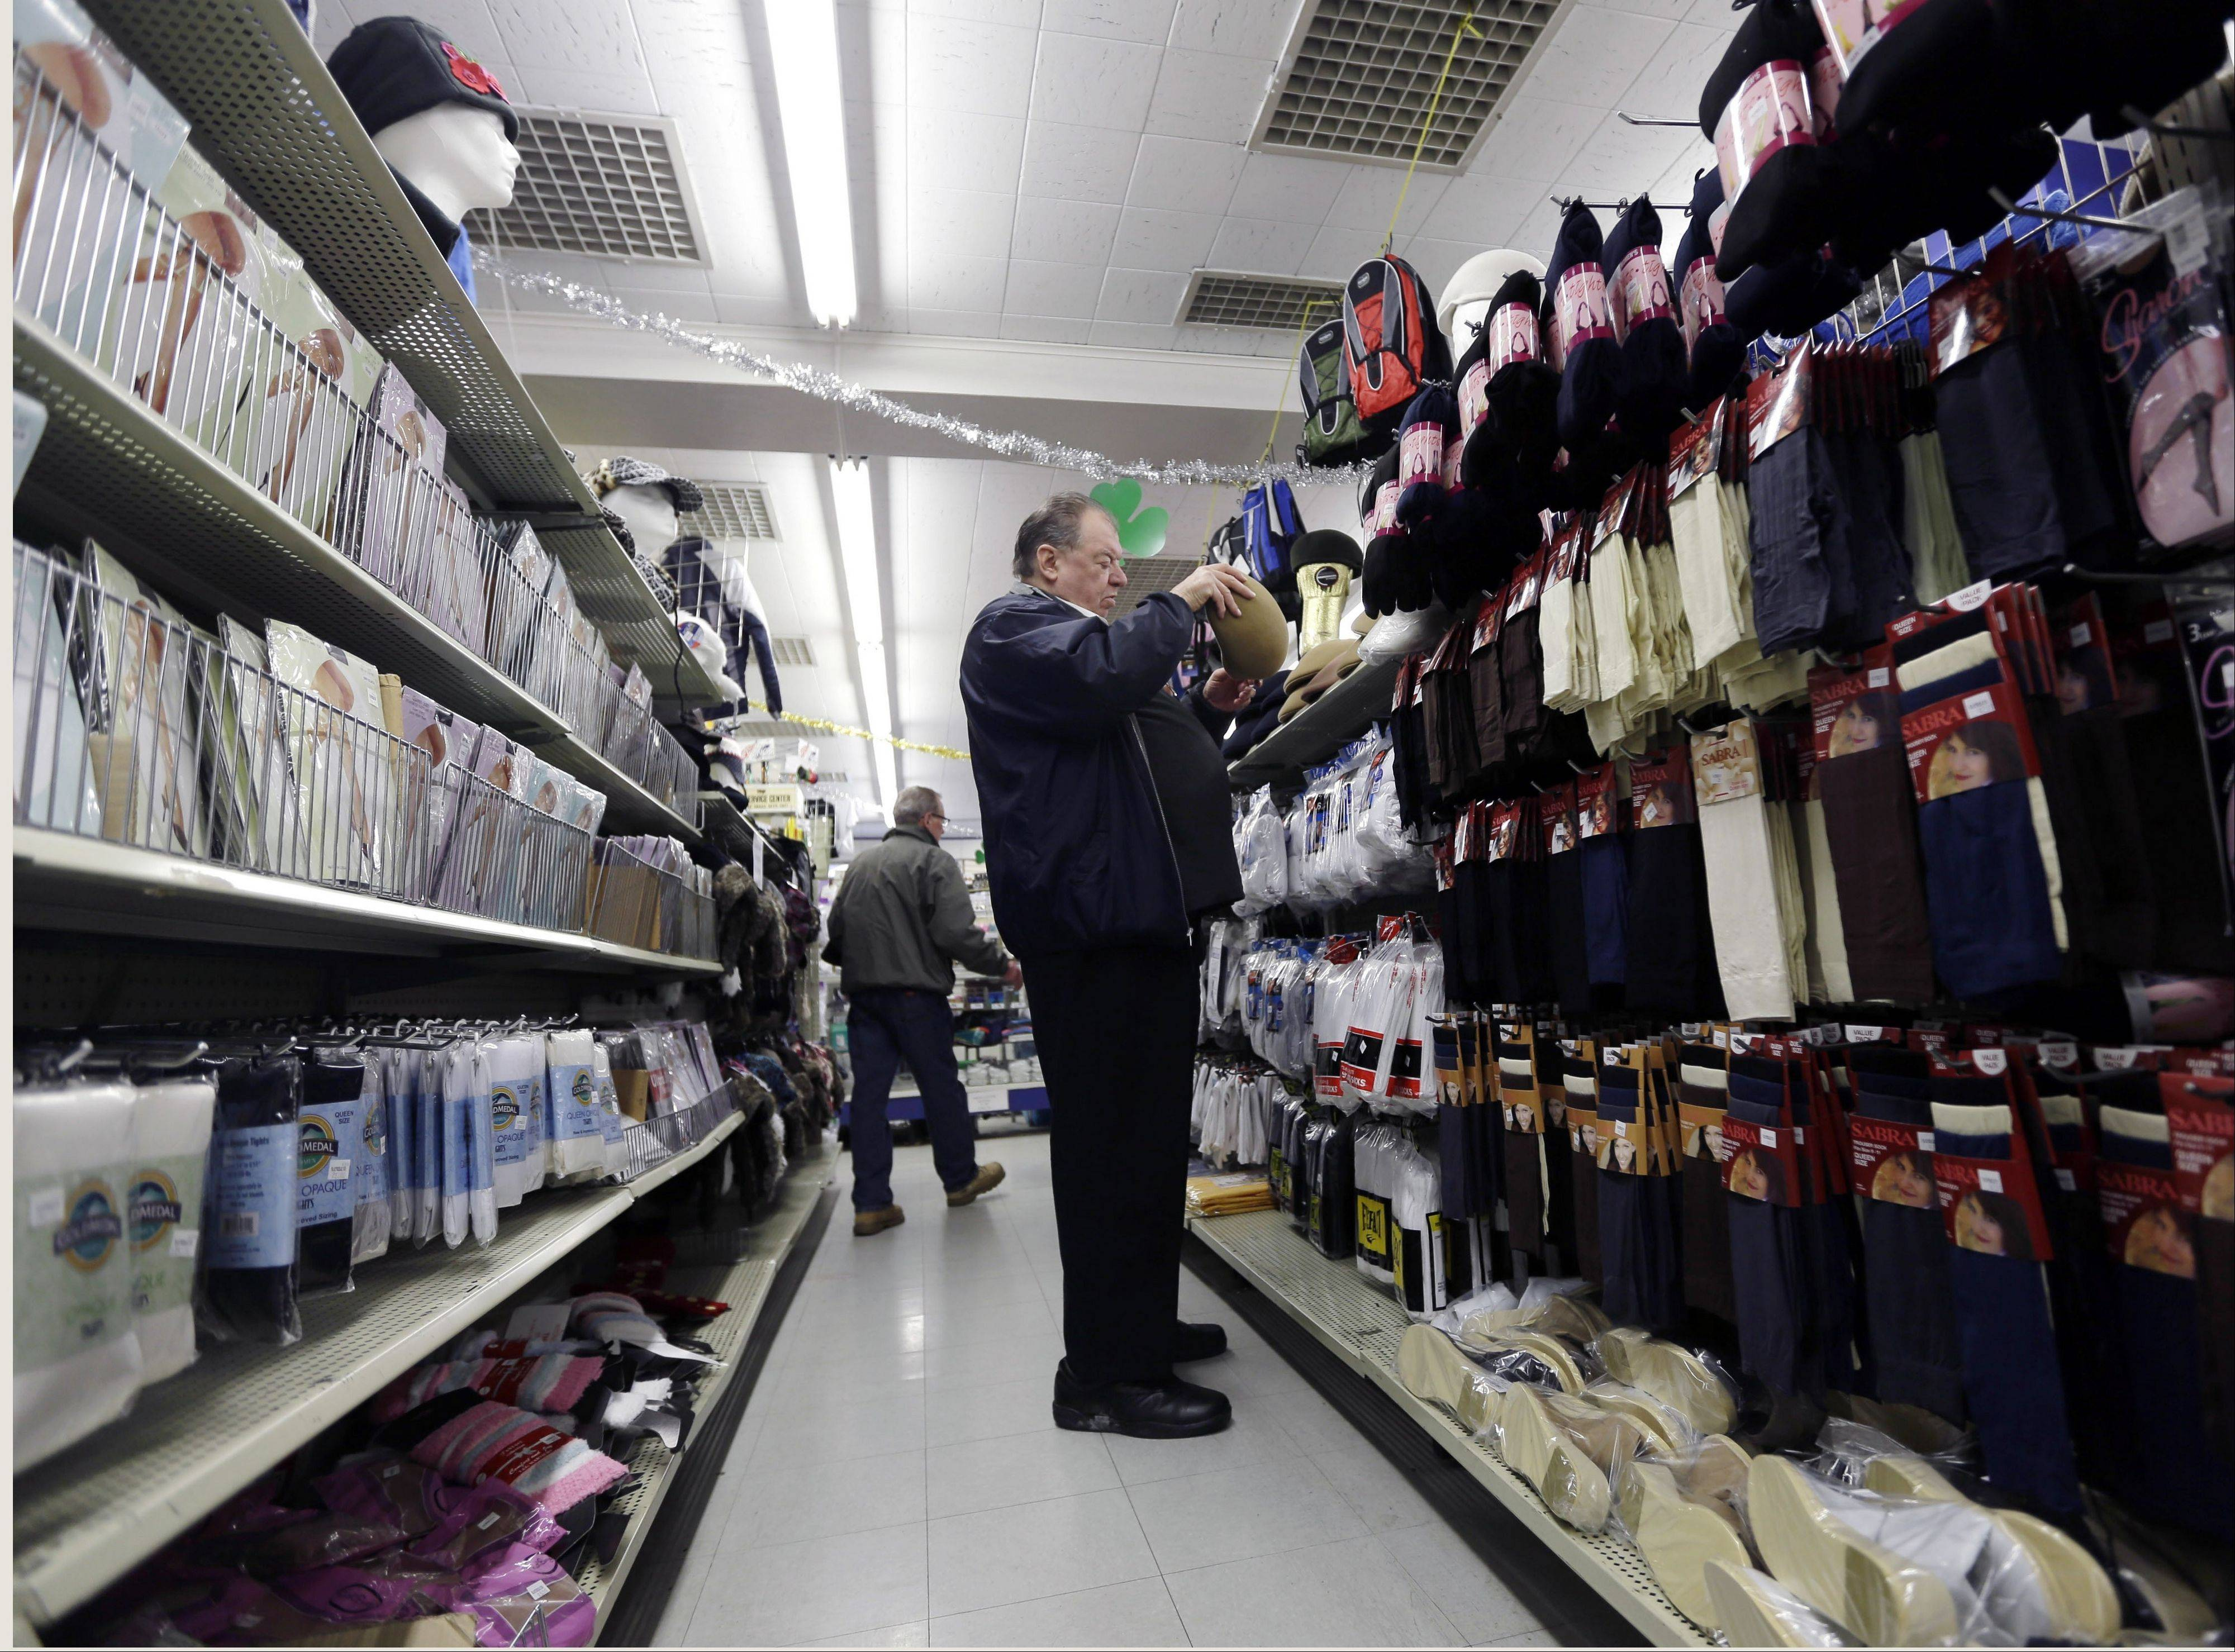 Marty Grossman shops for a hat at Lodge's store on in Albany, N.Y. Americans spent at the fastest pace in five months in February, boosting retail spending 1.1 percent compared with January.